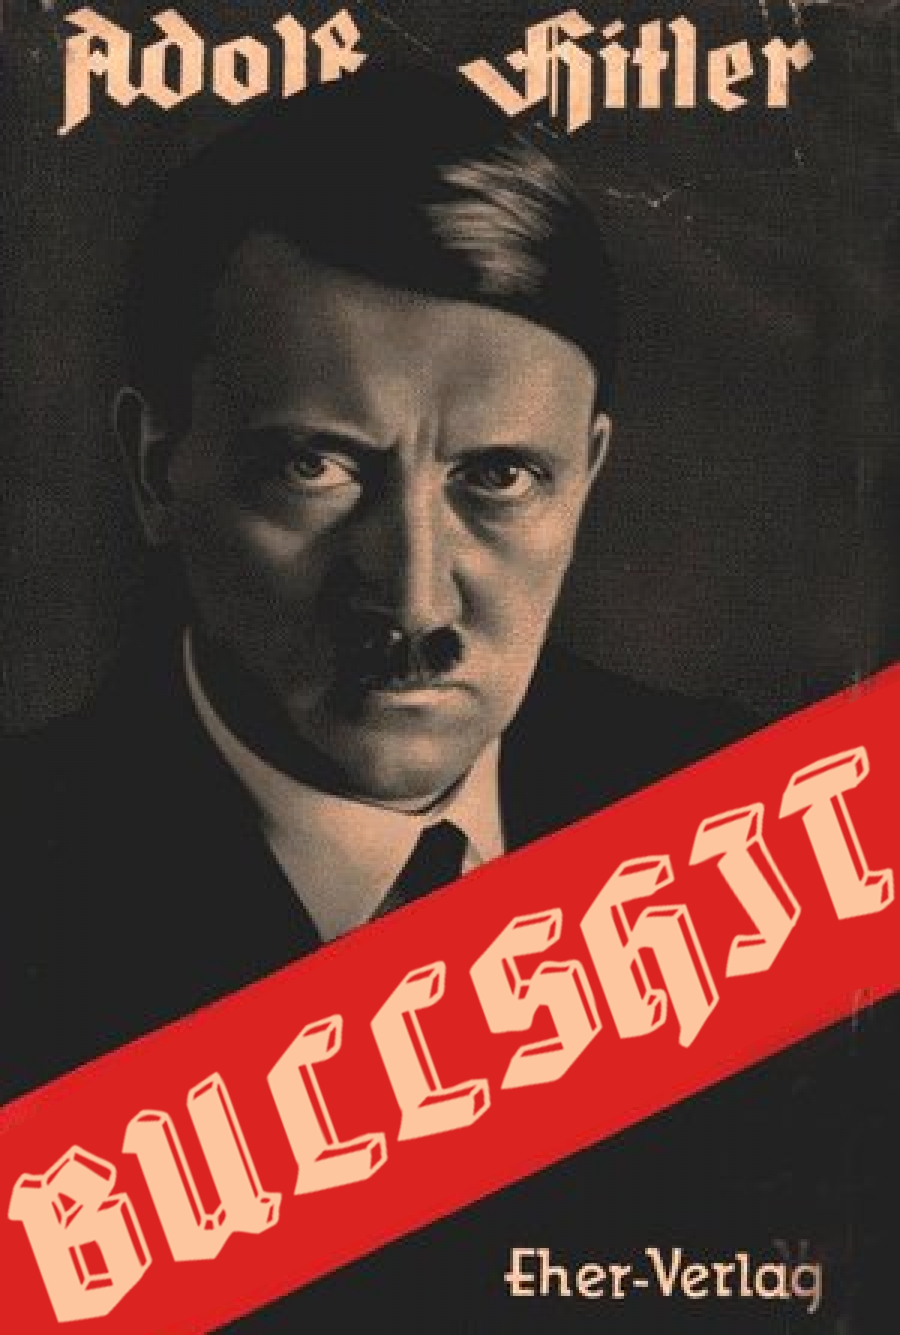 Mein Kampf Cover Related Keywords - Mein Kampf Cover Long ...